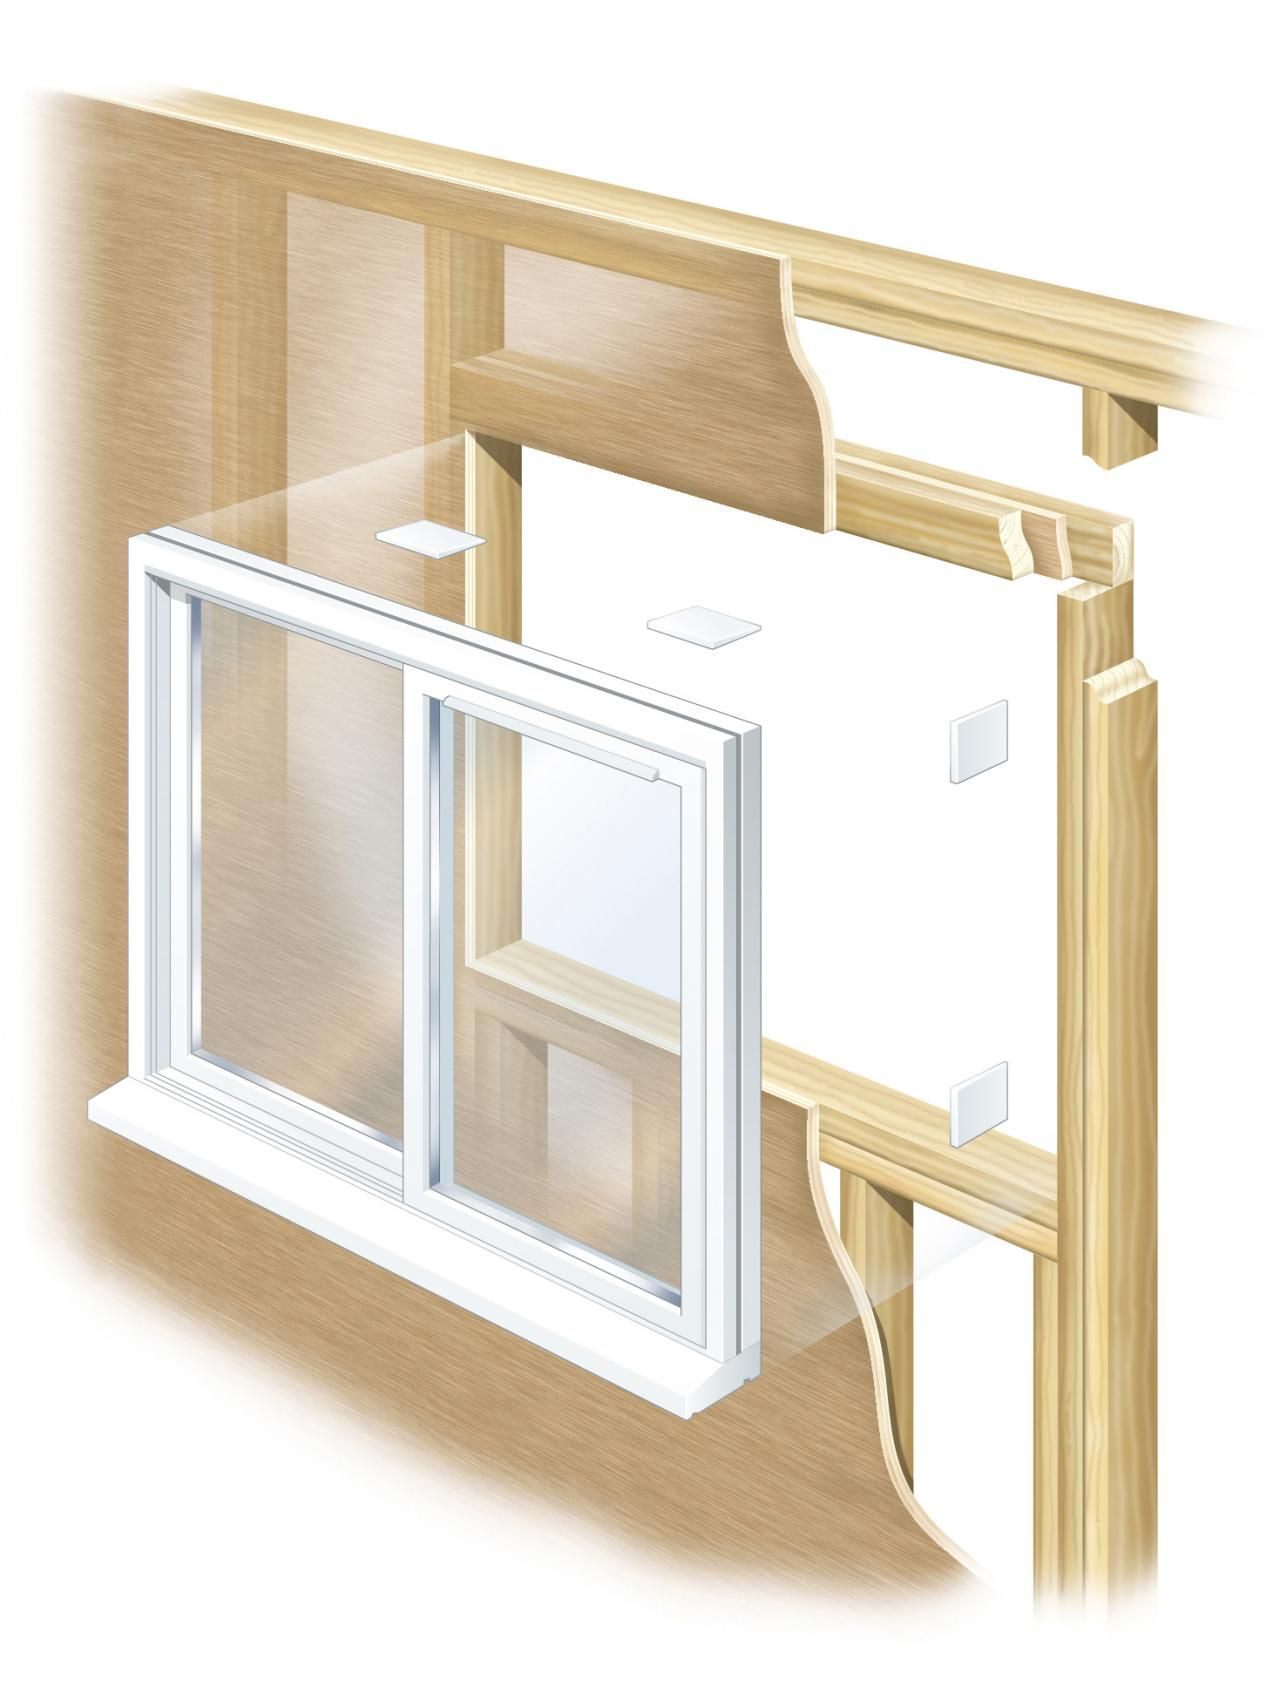 How to Remove an Old Window and Frame a New One Home